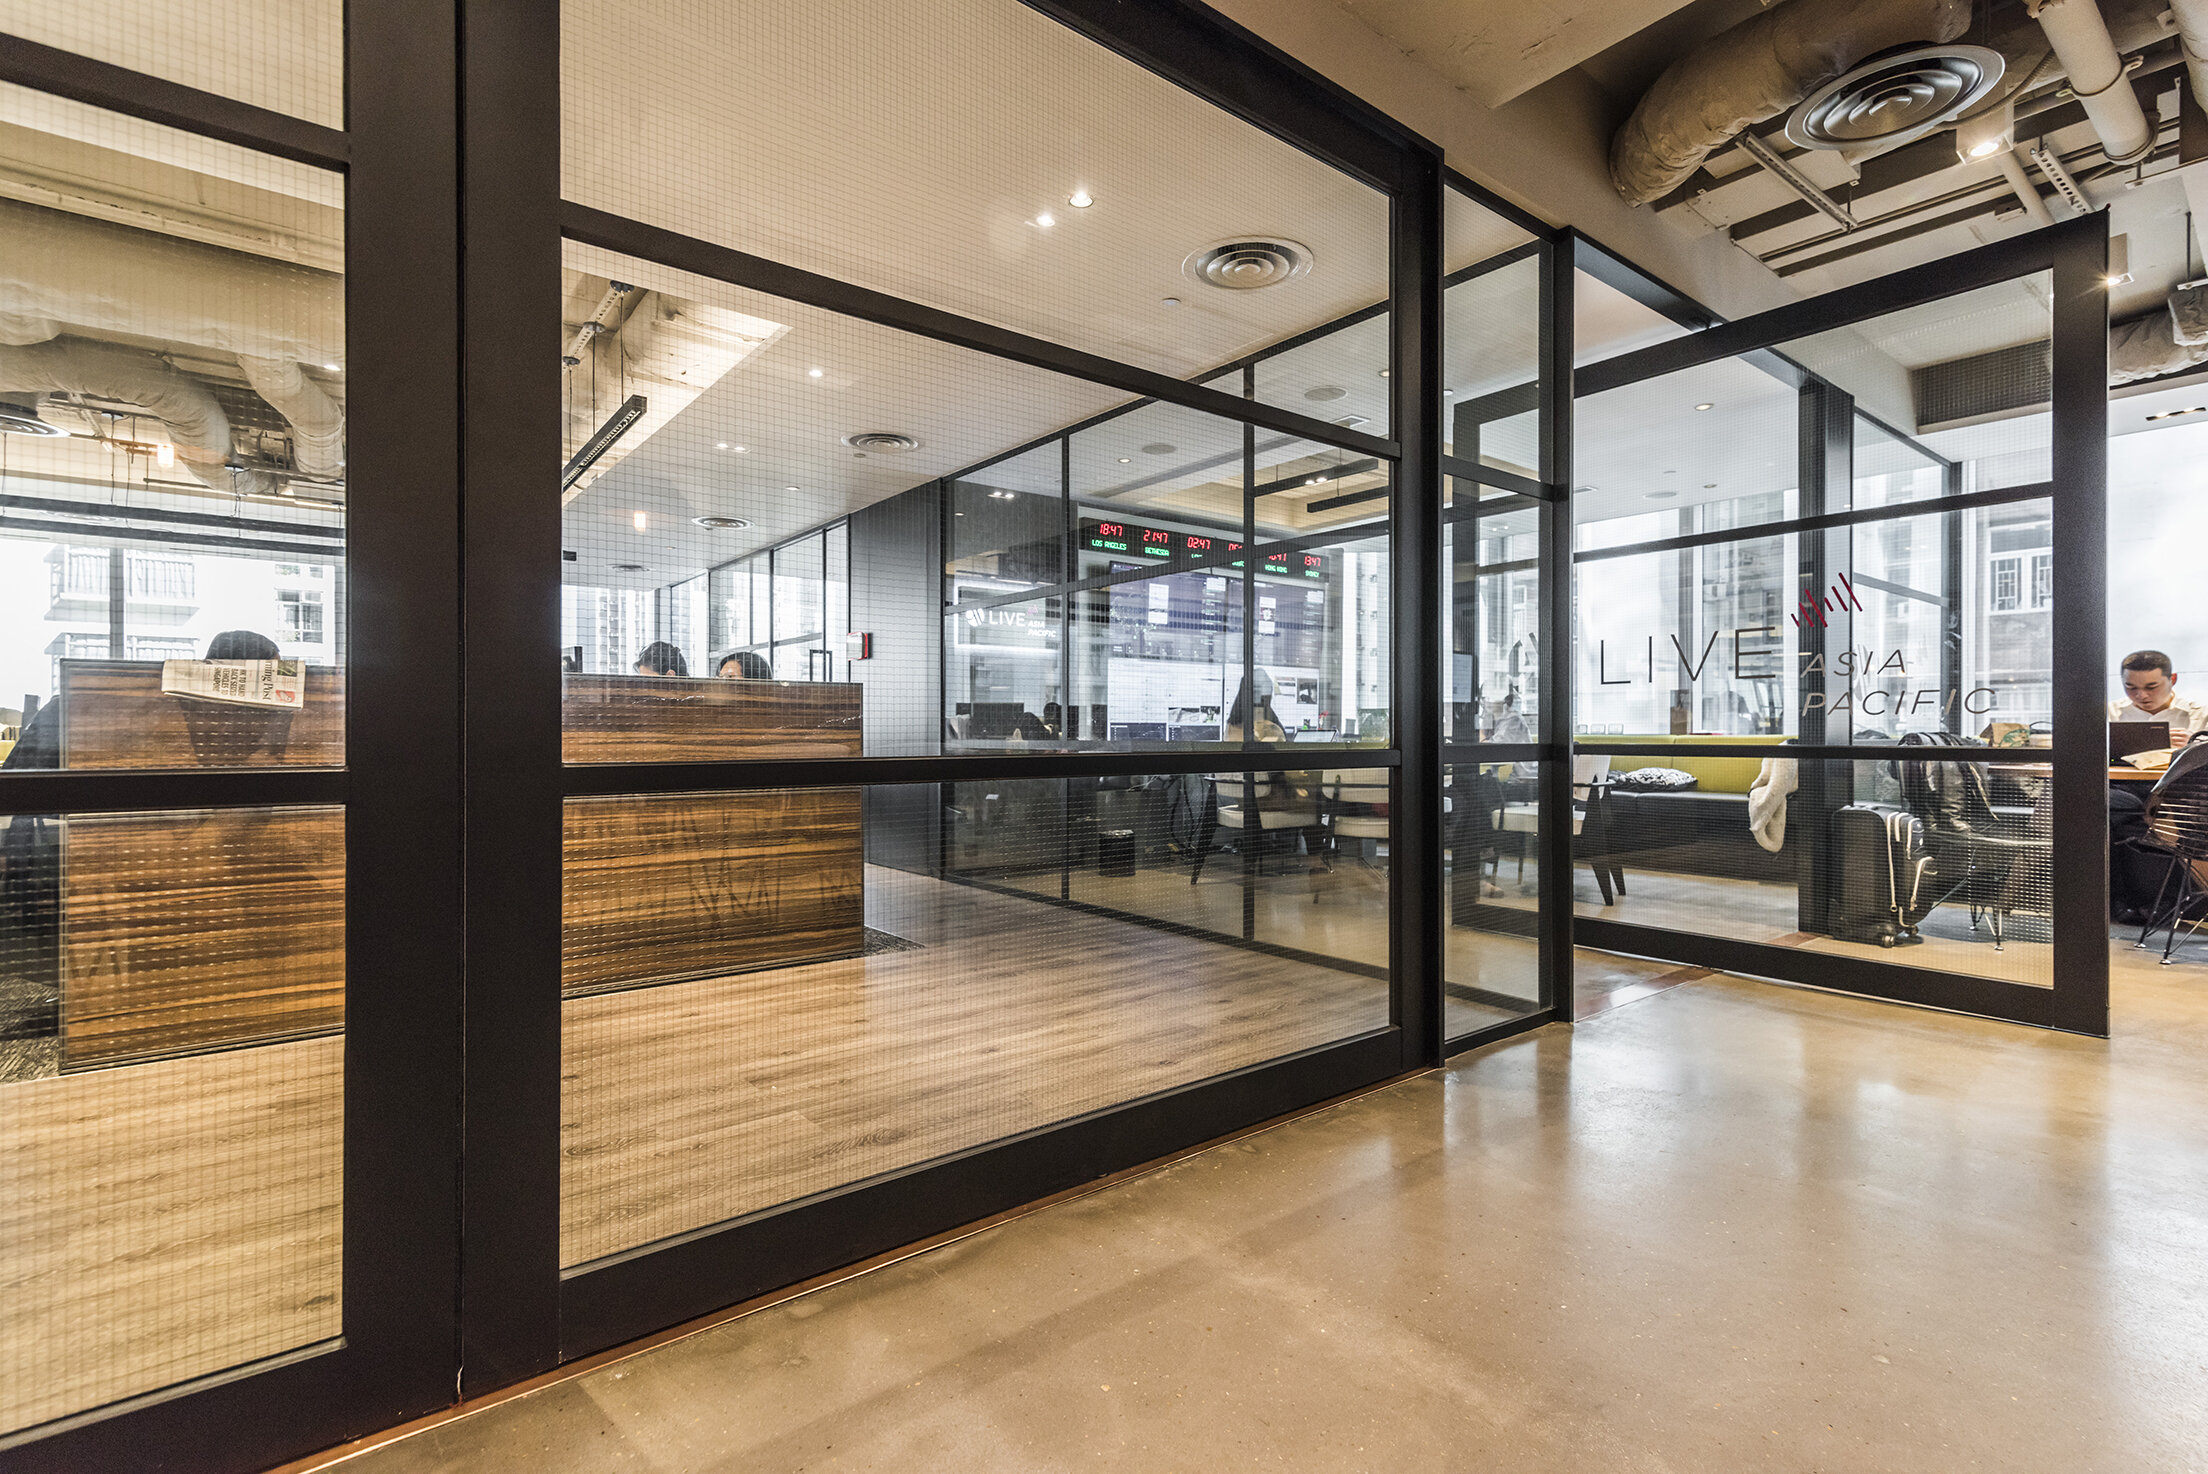 jeb-partitions-summit-integra-pivot-door-hongkong-office-07.jpg